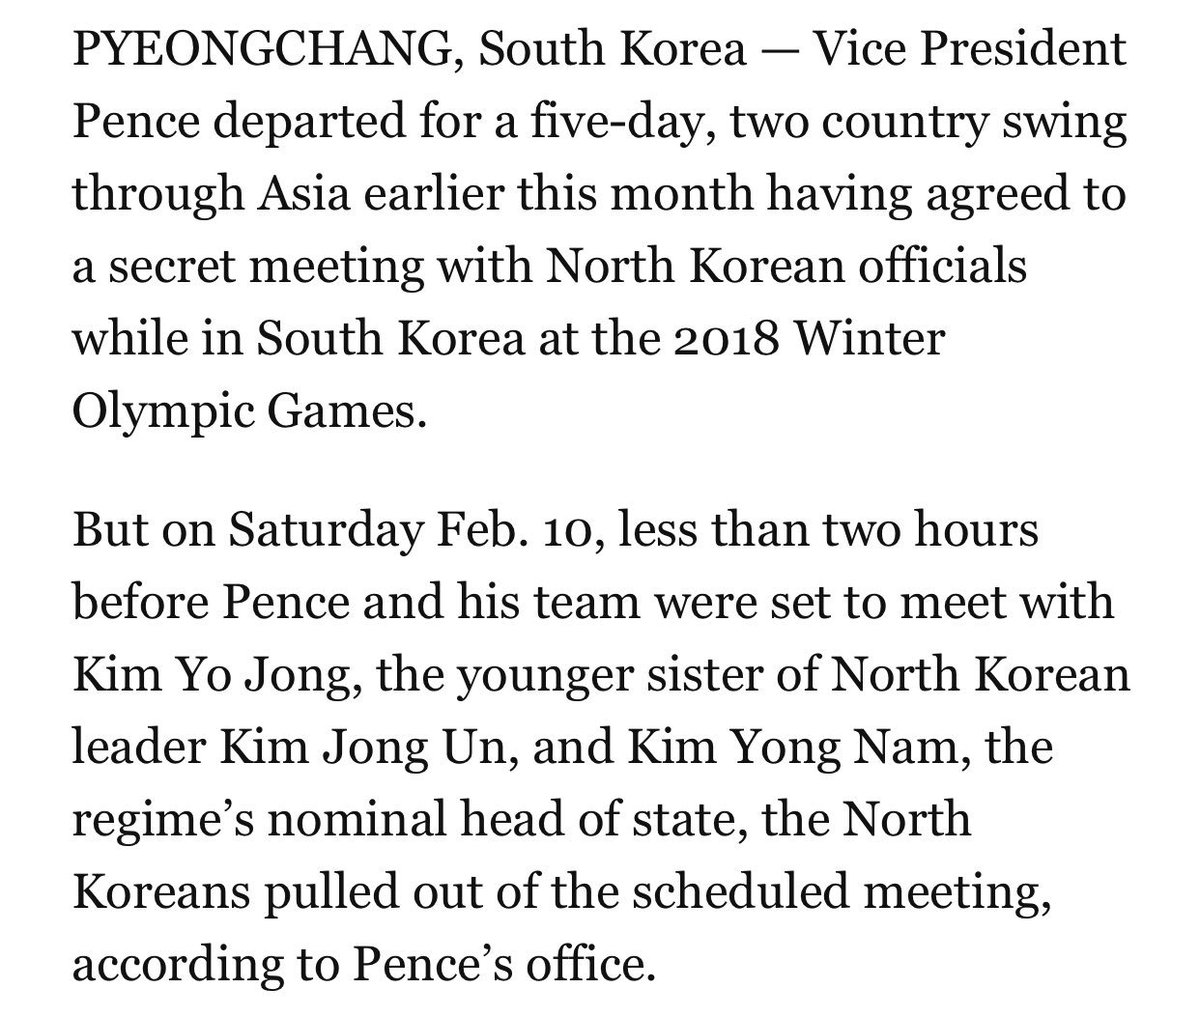 When Pence left for the Olympics earlier this month, he planned to take in the games — and hold a secret meeting with the North Koreans. My story: https://t.co/z3pGbBGm4f